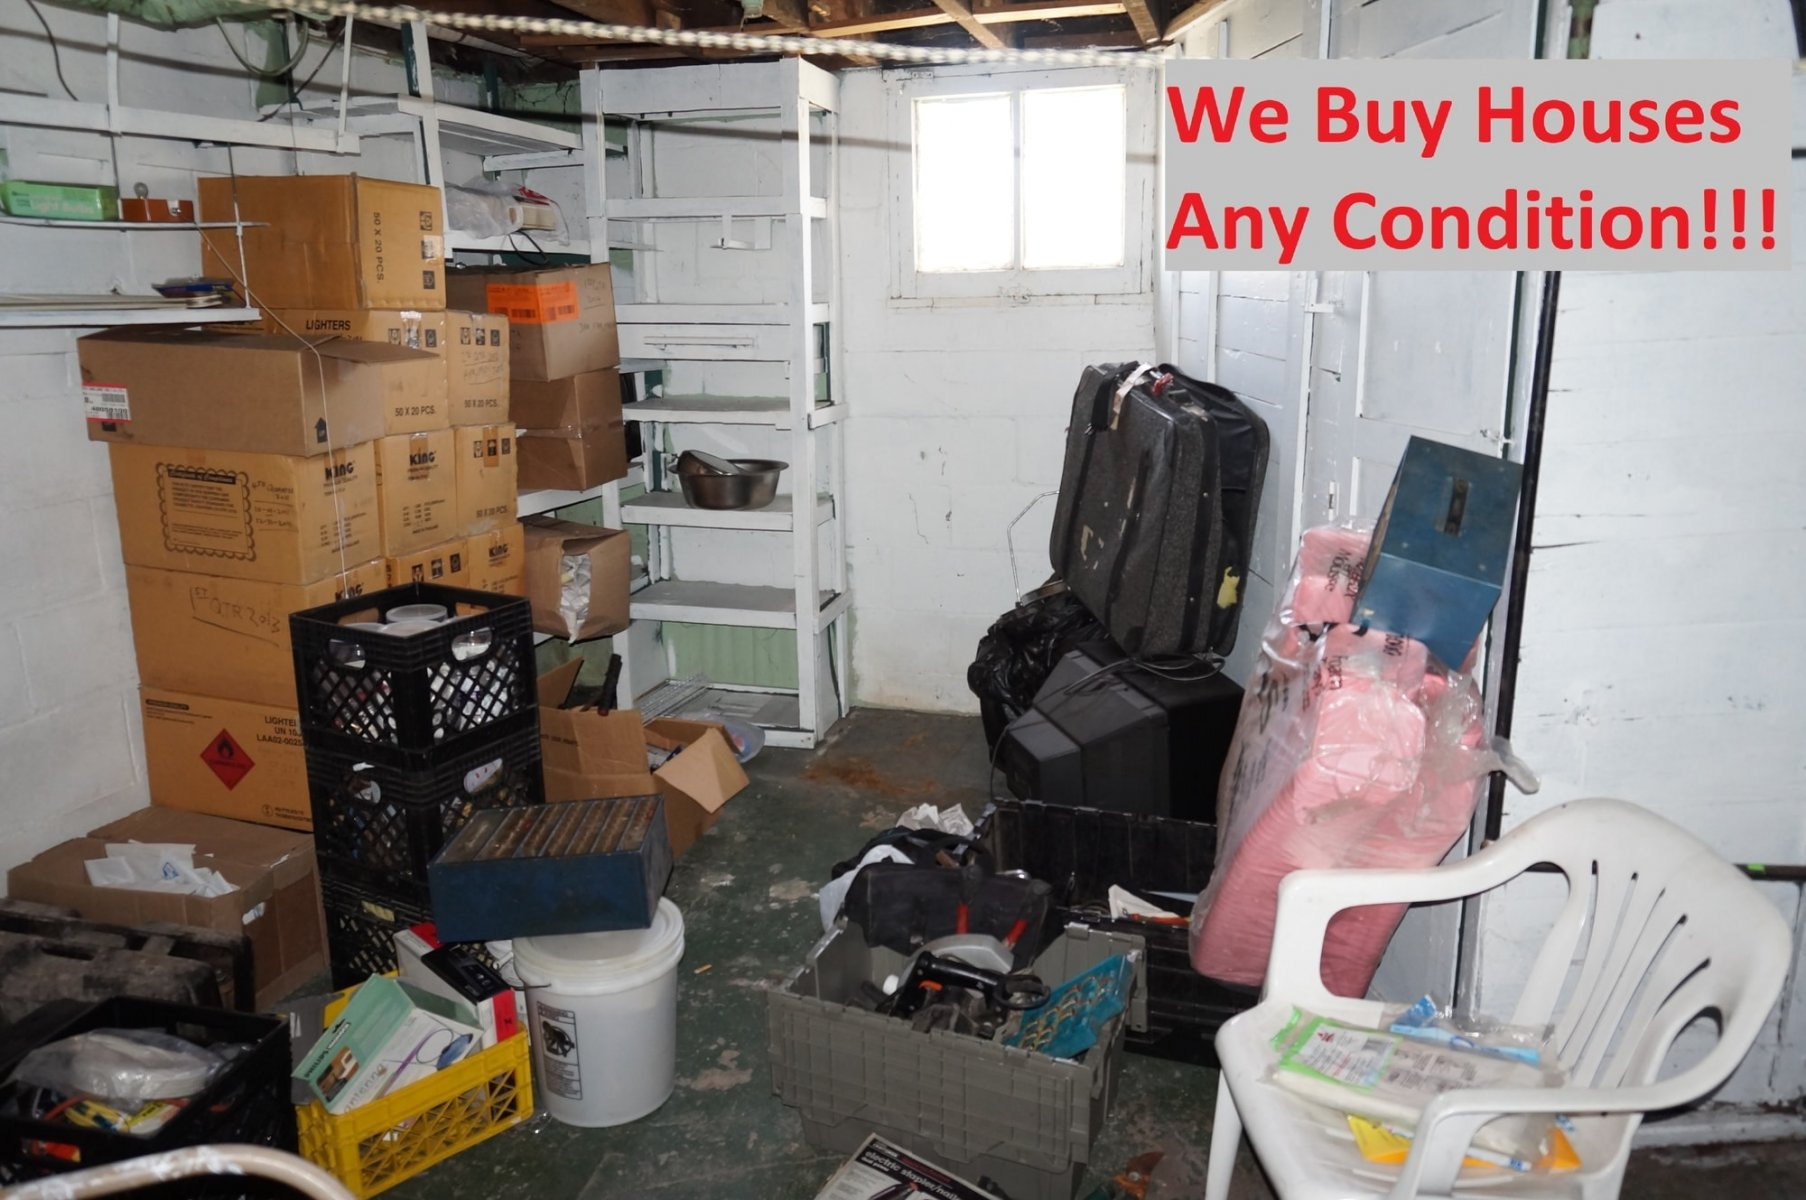 sell-house-fast-cash-St-Clair-Shores-MI